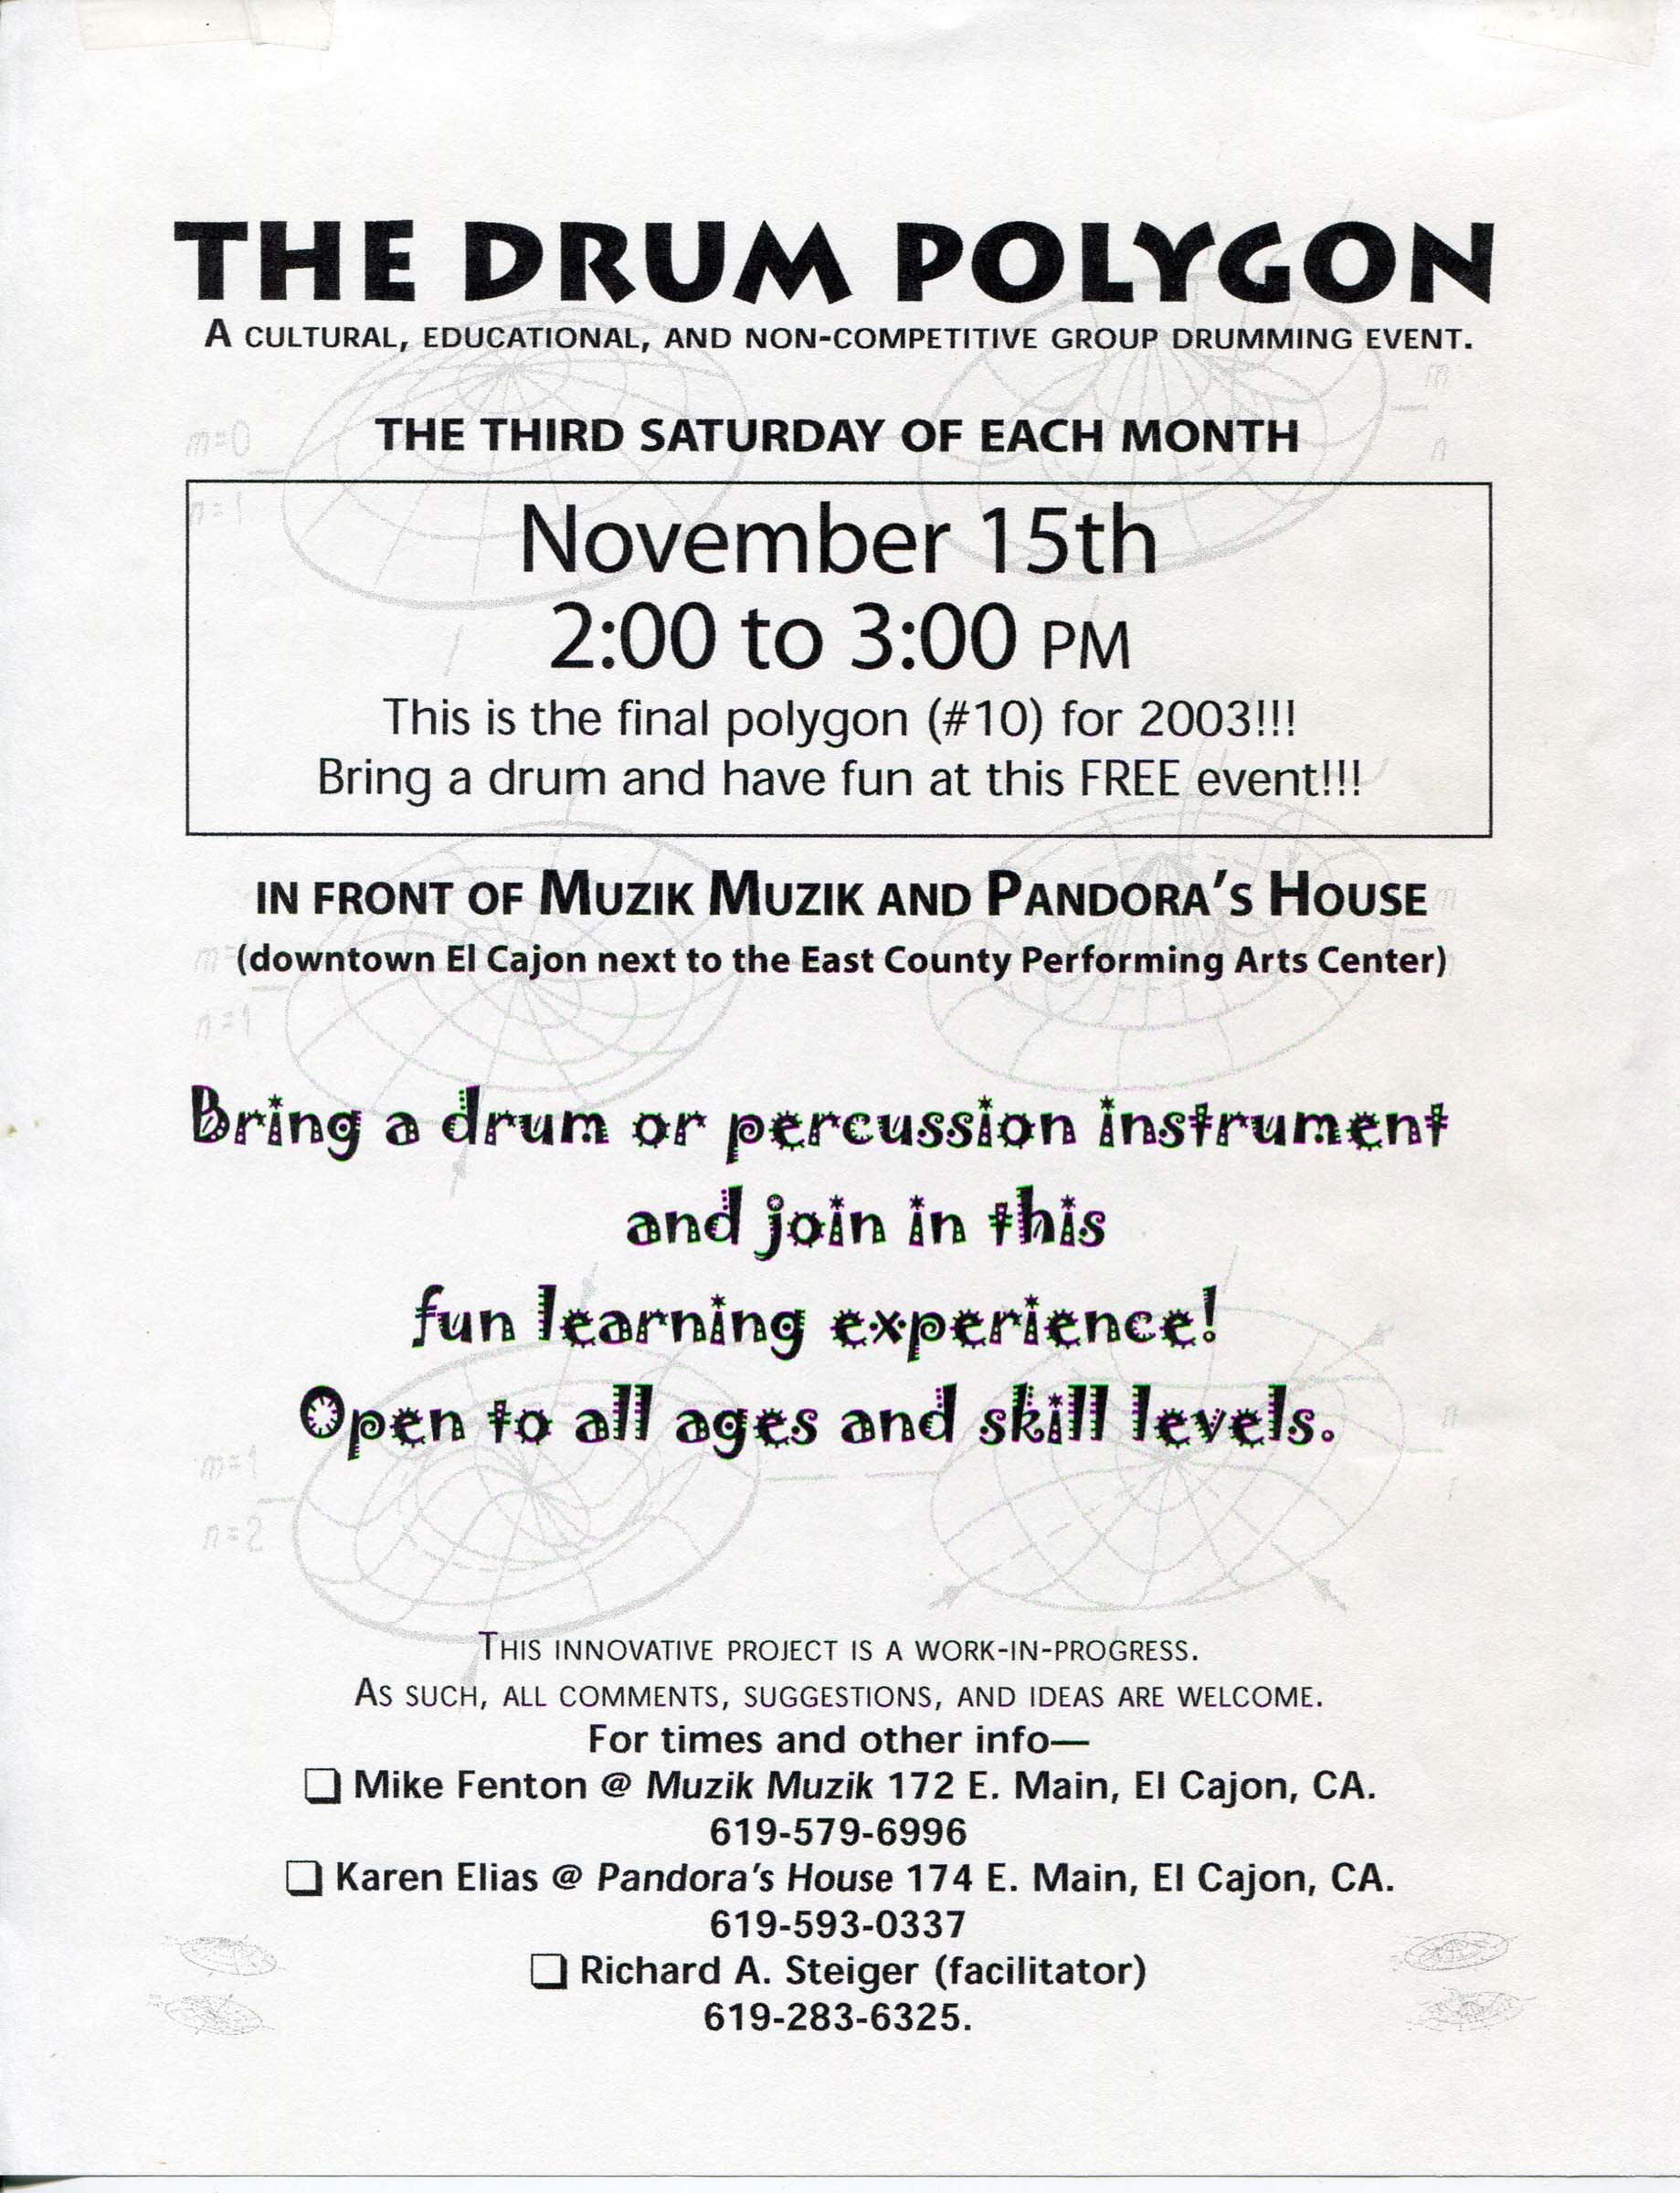 2003 The Drum Polygon